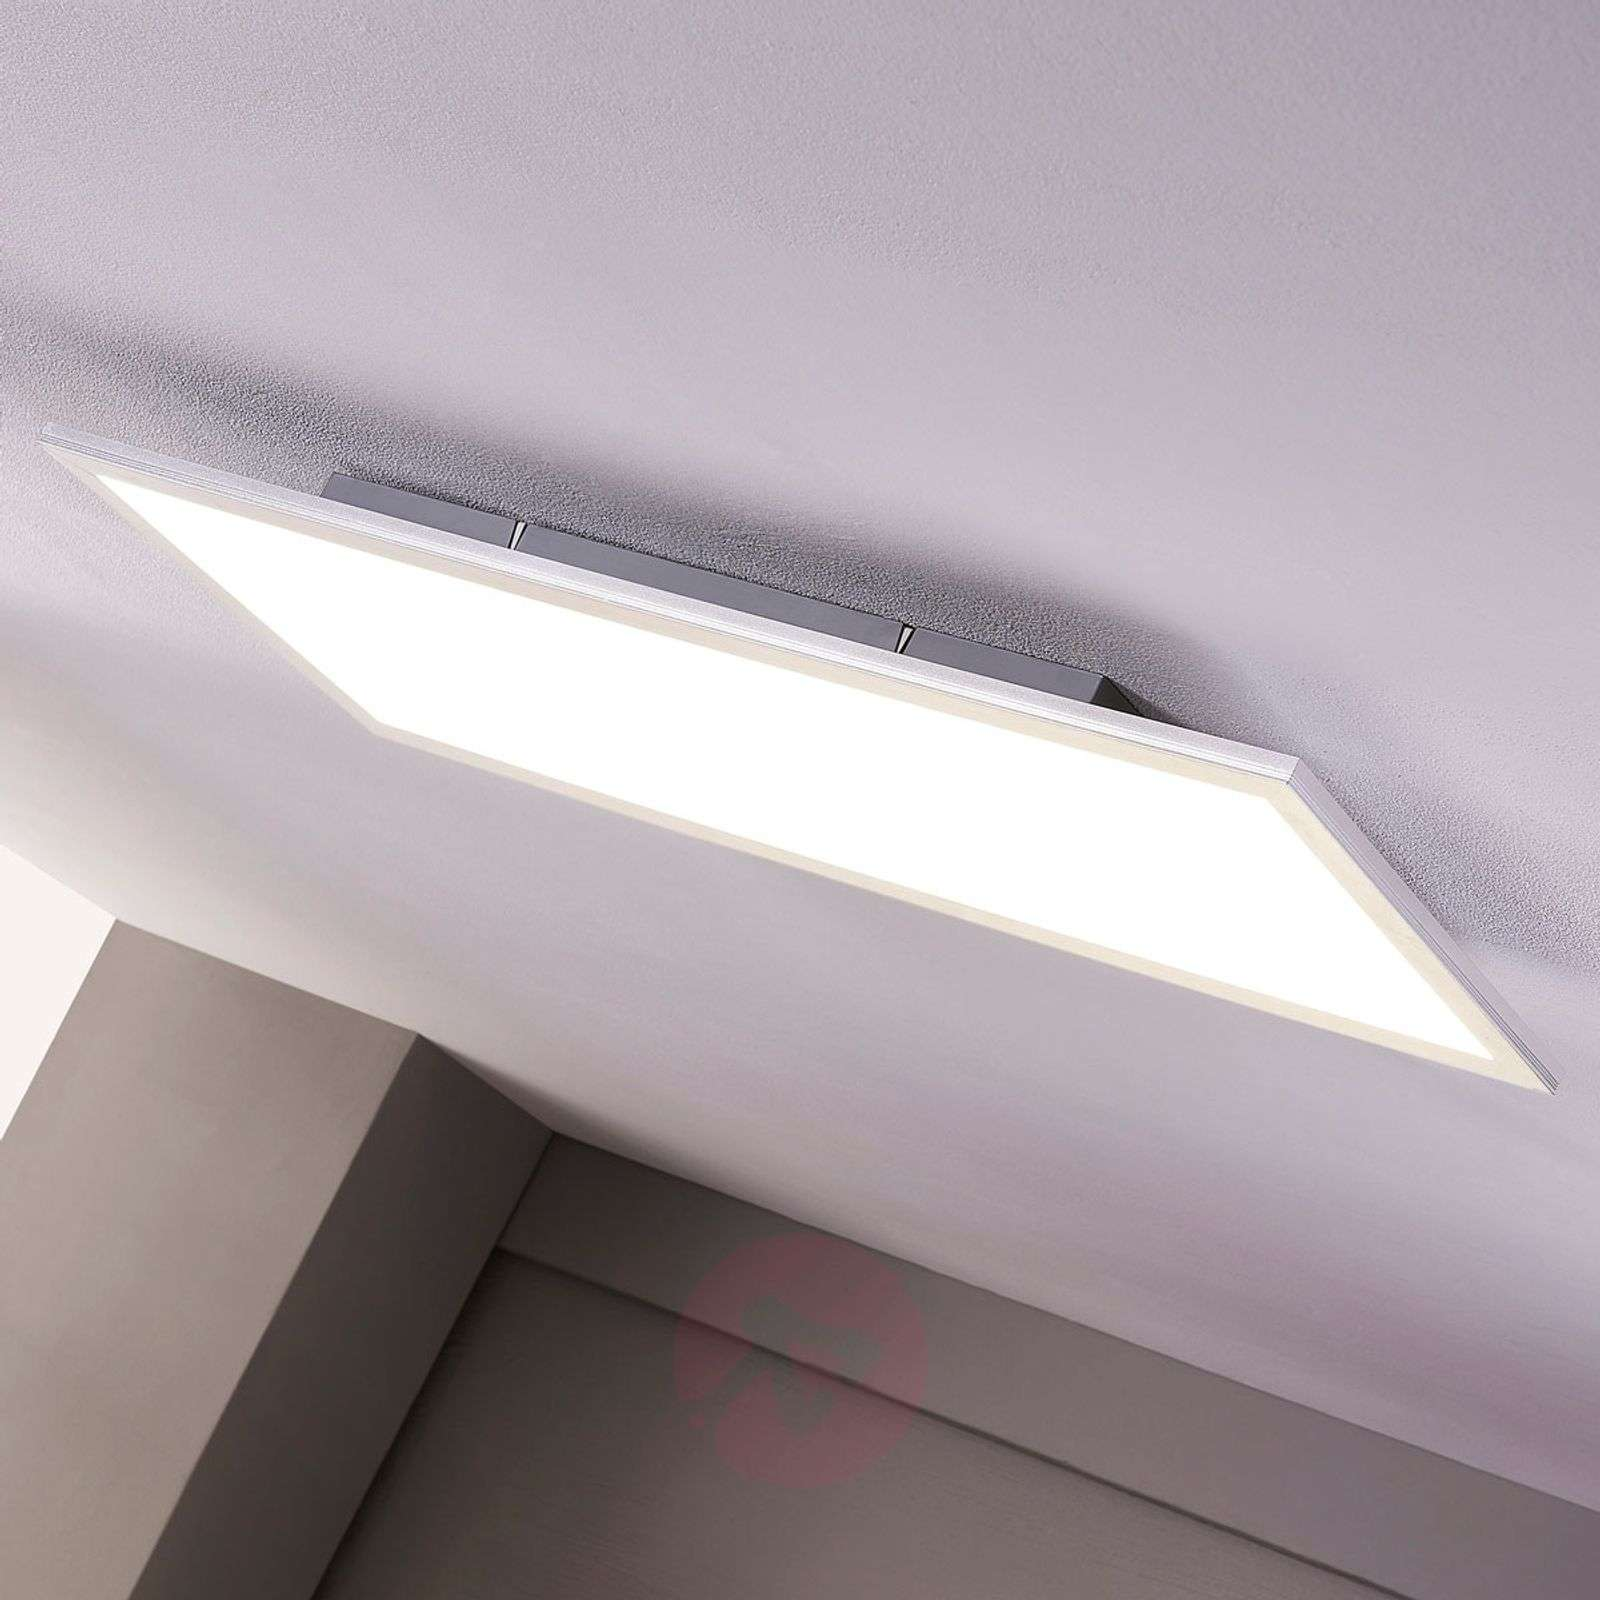 LED panel Liv with an elongated shape, cool white-9956002-01